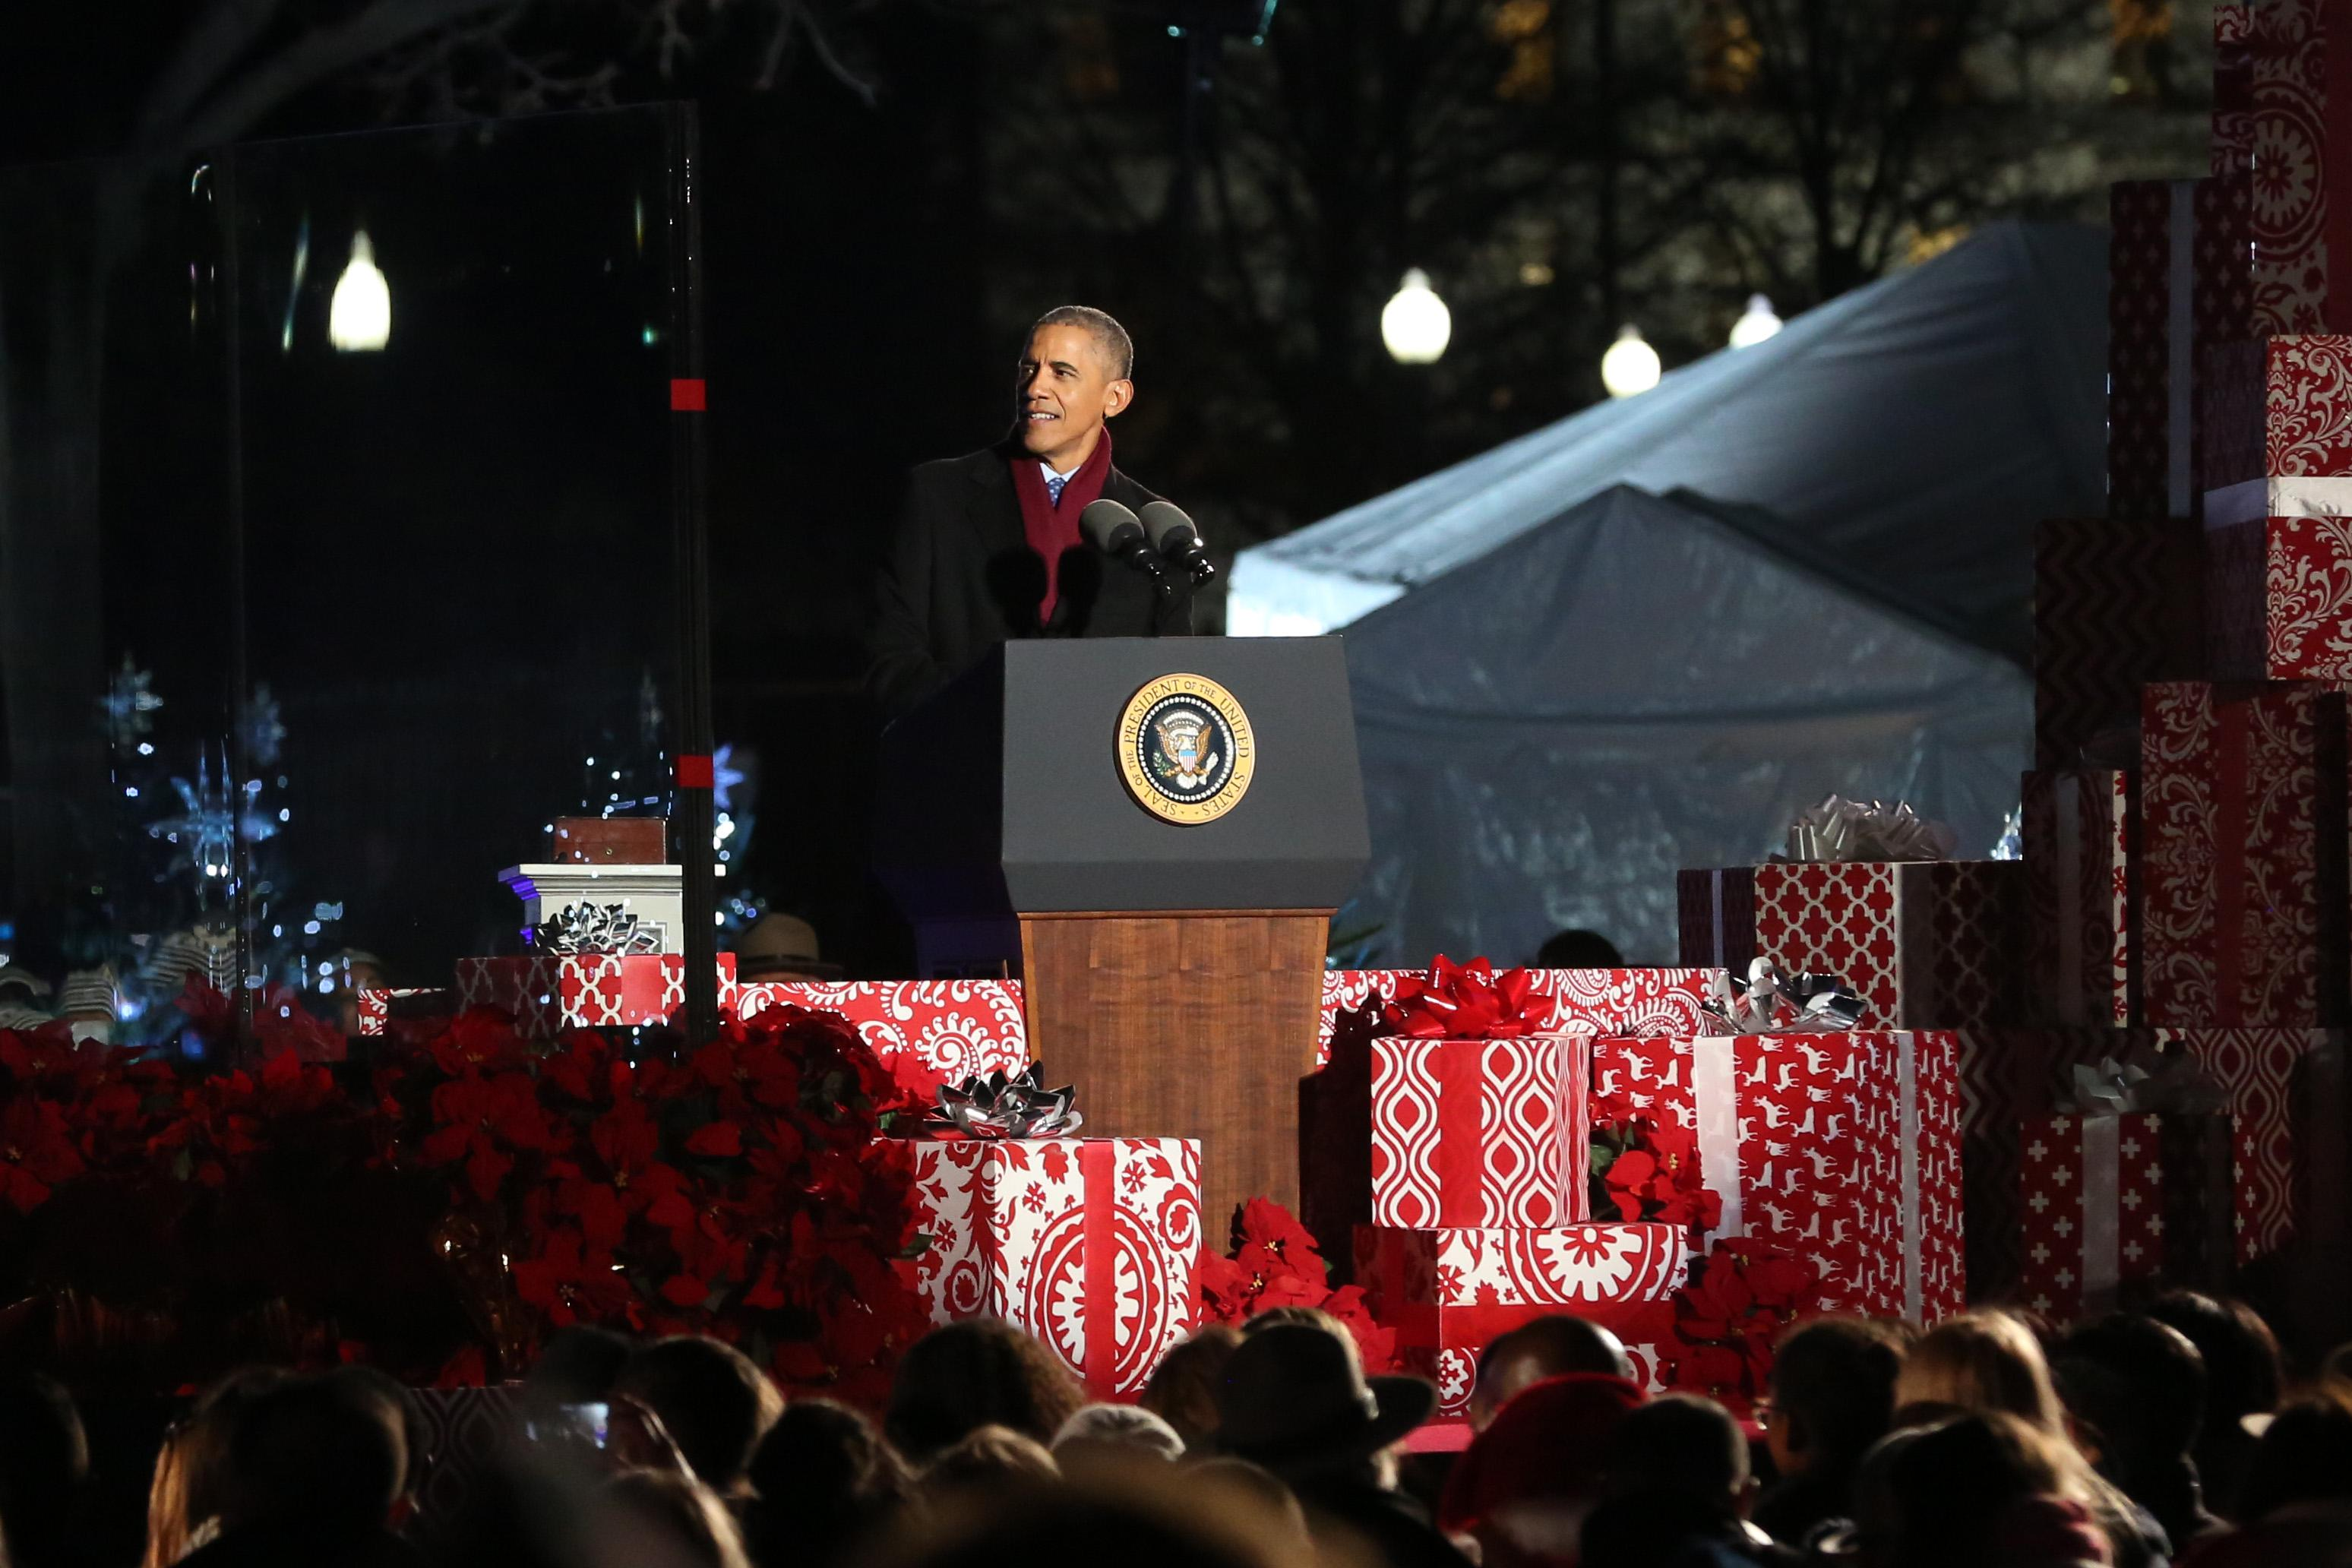 President Obama's final White House tree lighting ceremony, December 2016. (Amanda Andrade-Rhoades/DC Refined)